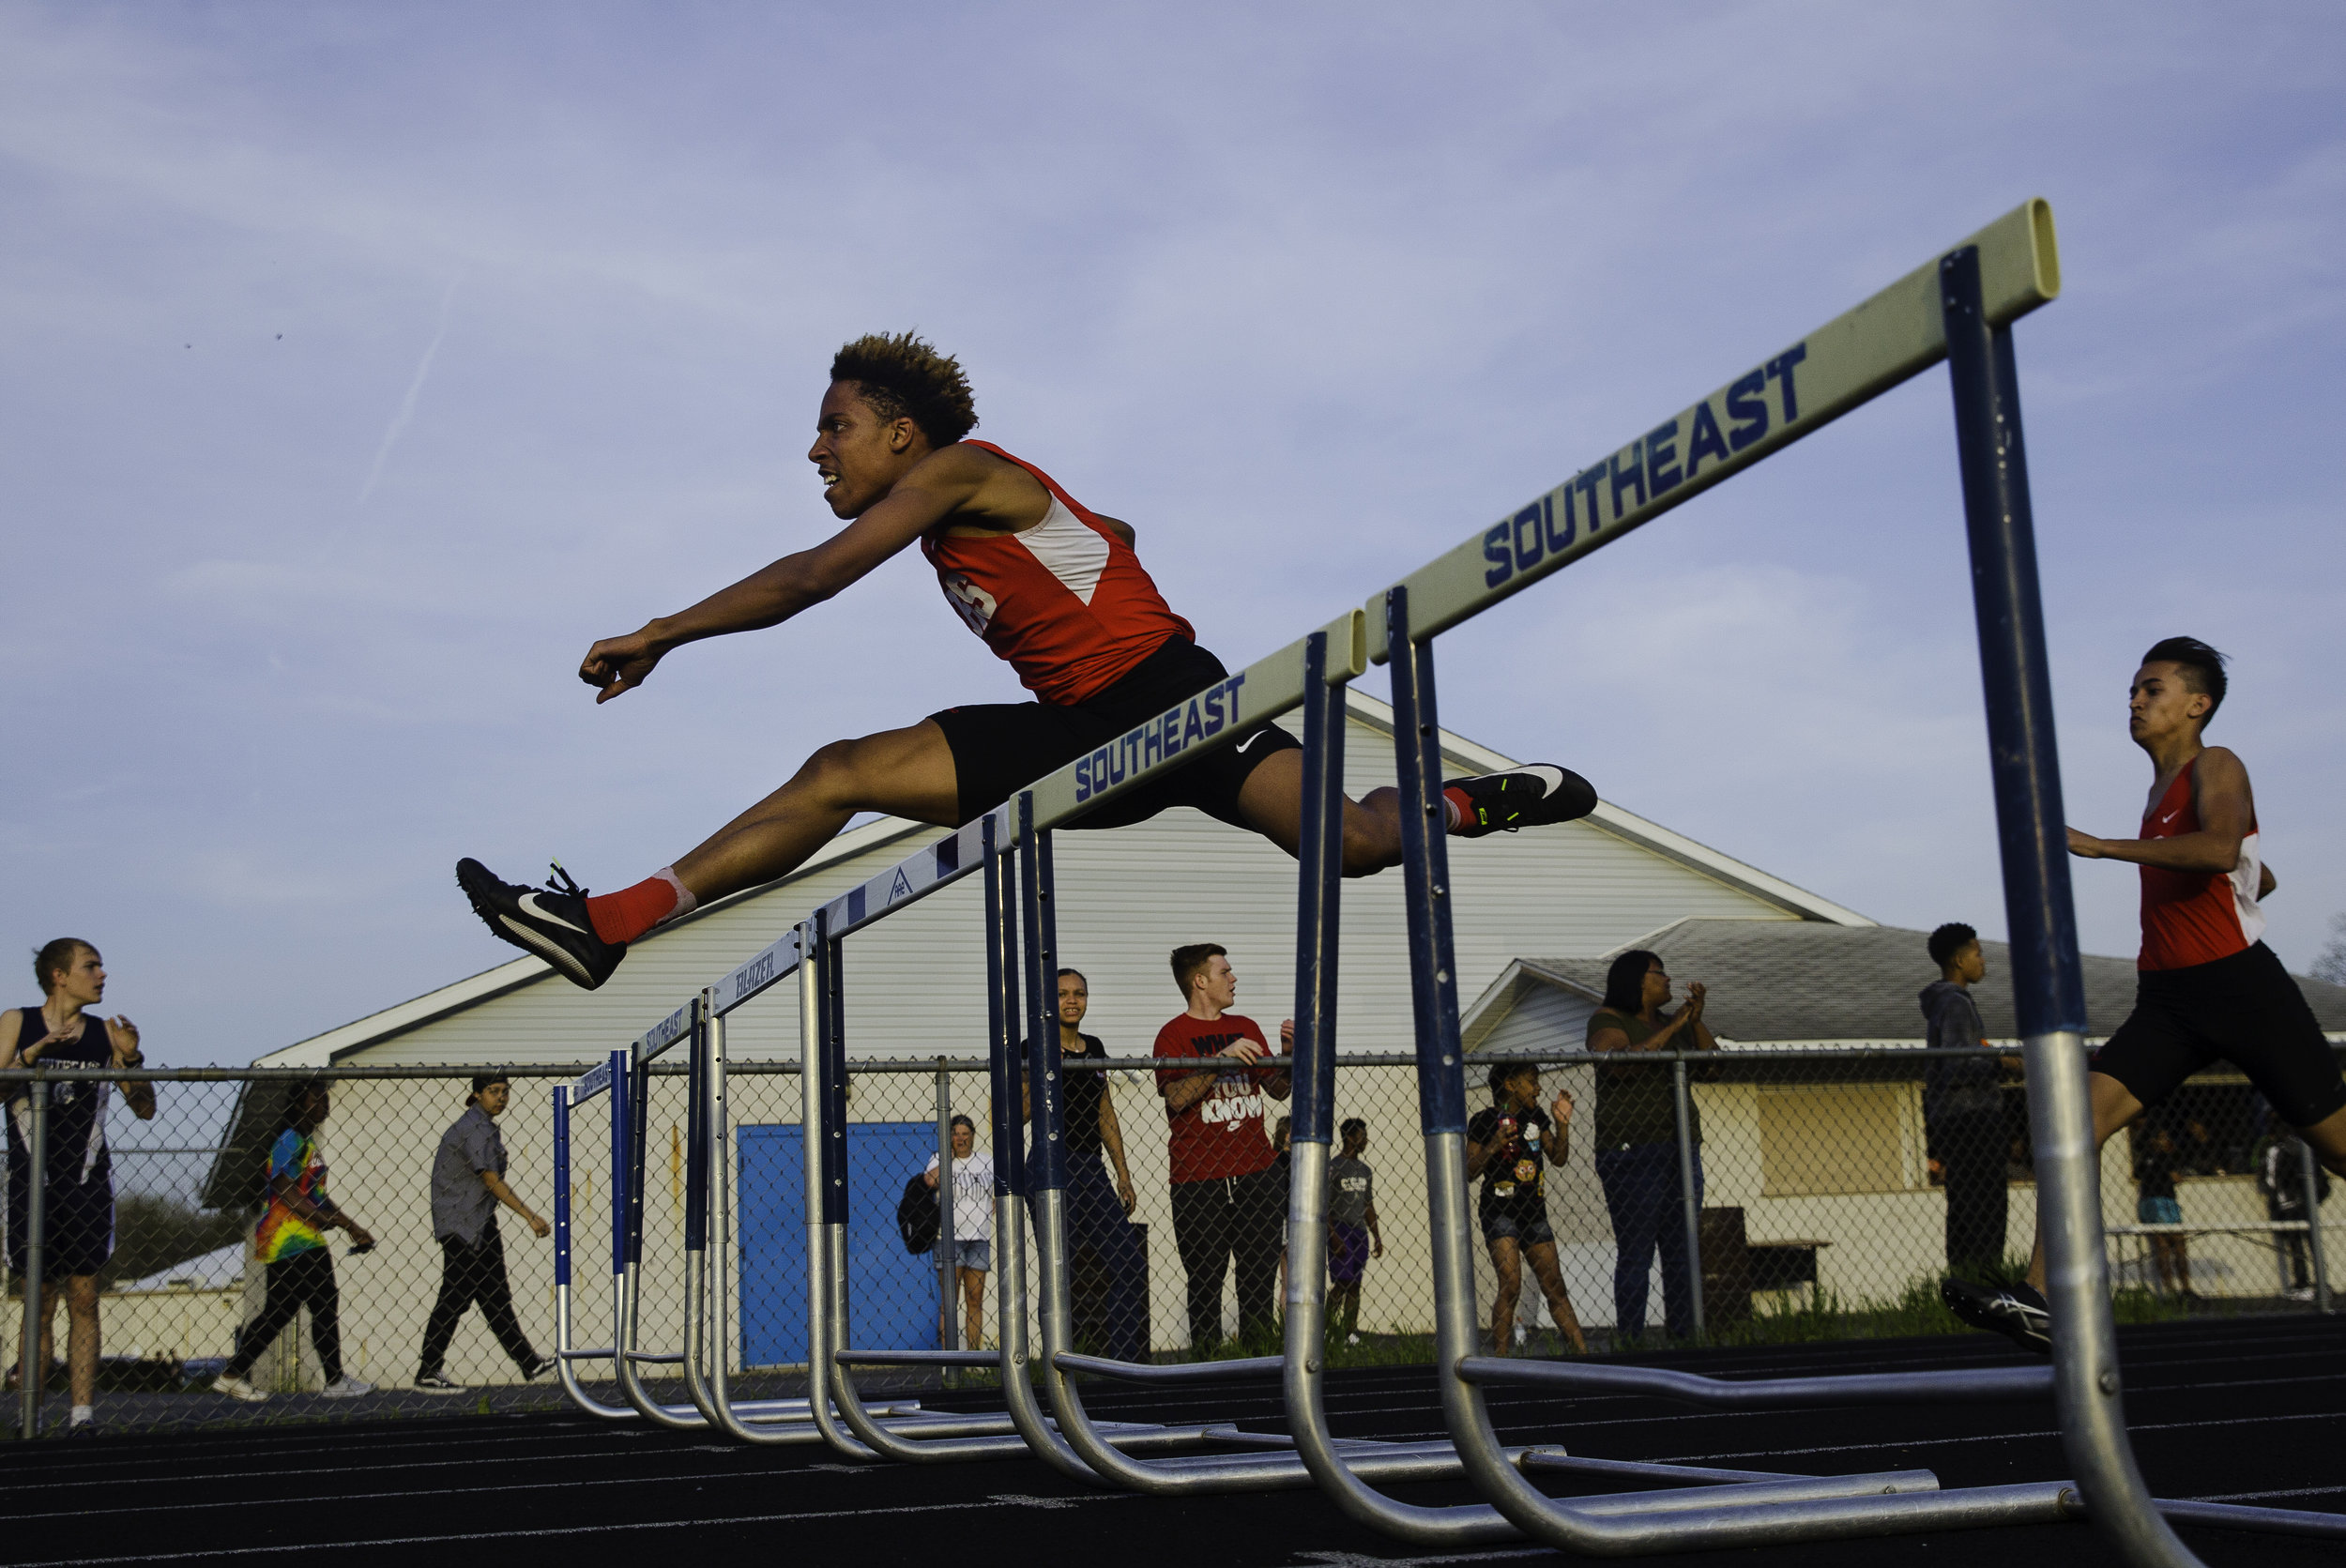 Springfield's Robert Williams clears the second to last hurdle in the 300 meter hurdles during the Boys City Track Meet at Southeast High School Tuesday, May 1, 2018. Williams won the event. [Ted Schurter/The State Journal-Register]